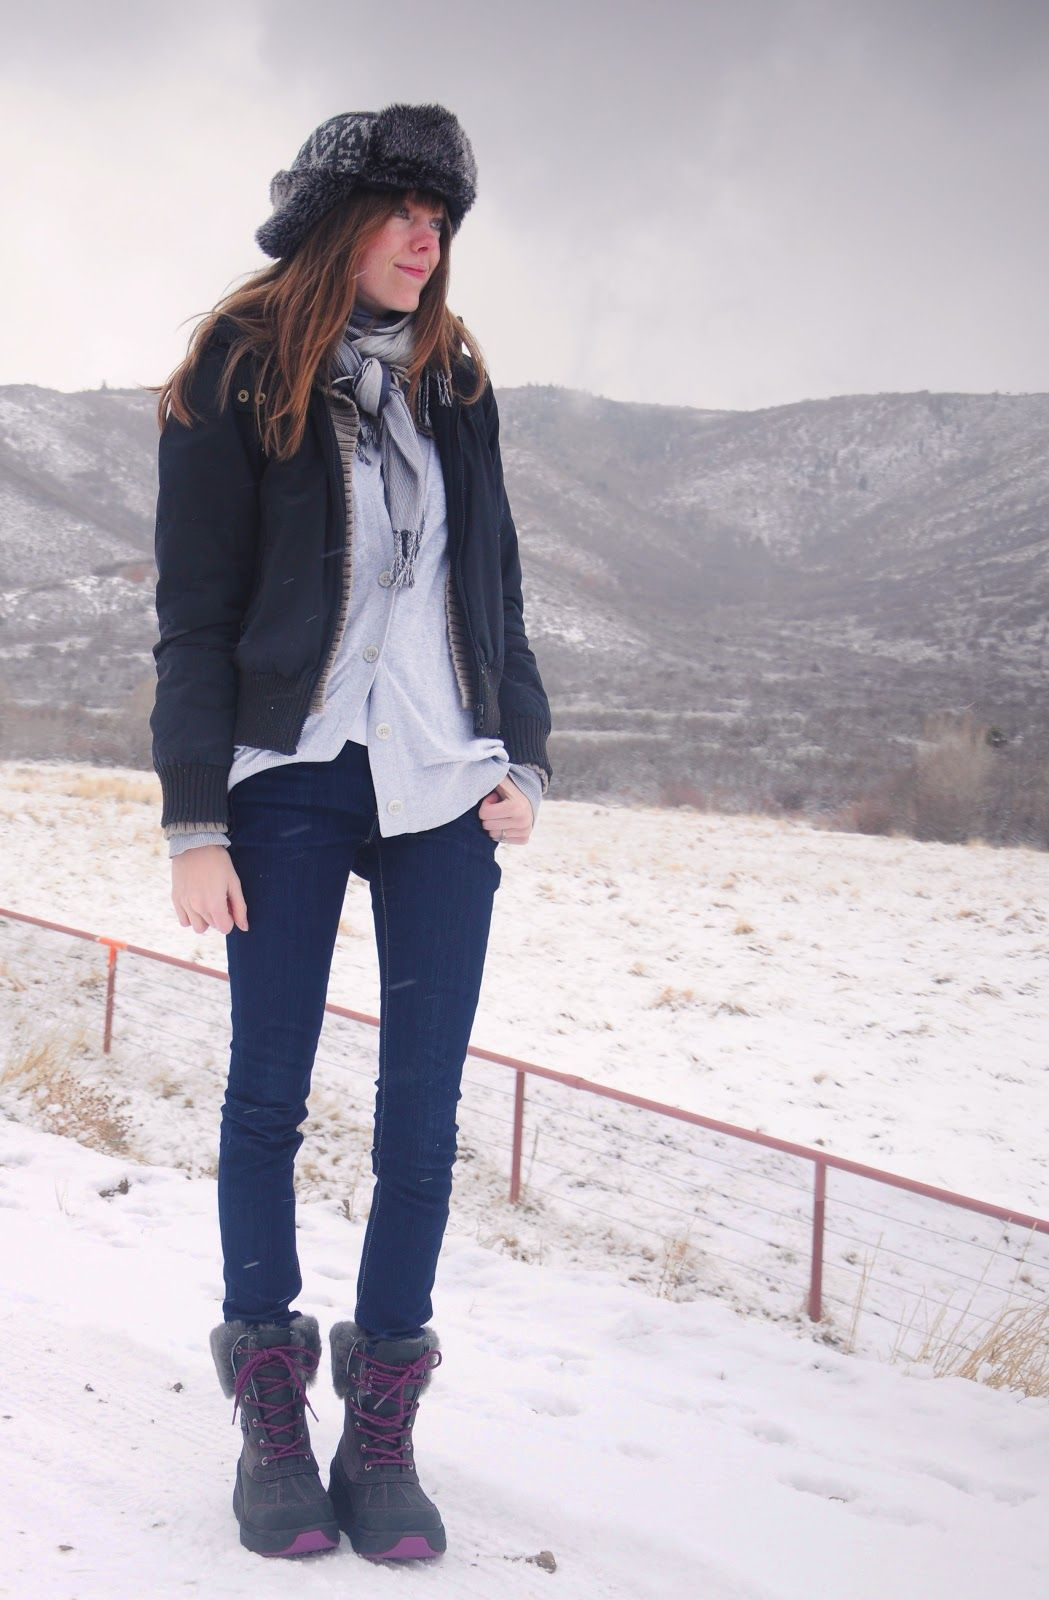 Winter Hiking Fashion; UGG Snow Boots | Our Style | Pinterest | Hiking Fashion Winter Hiking ...